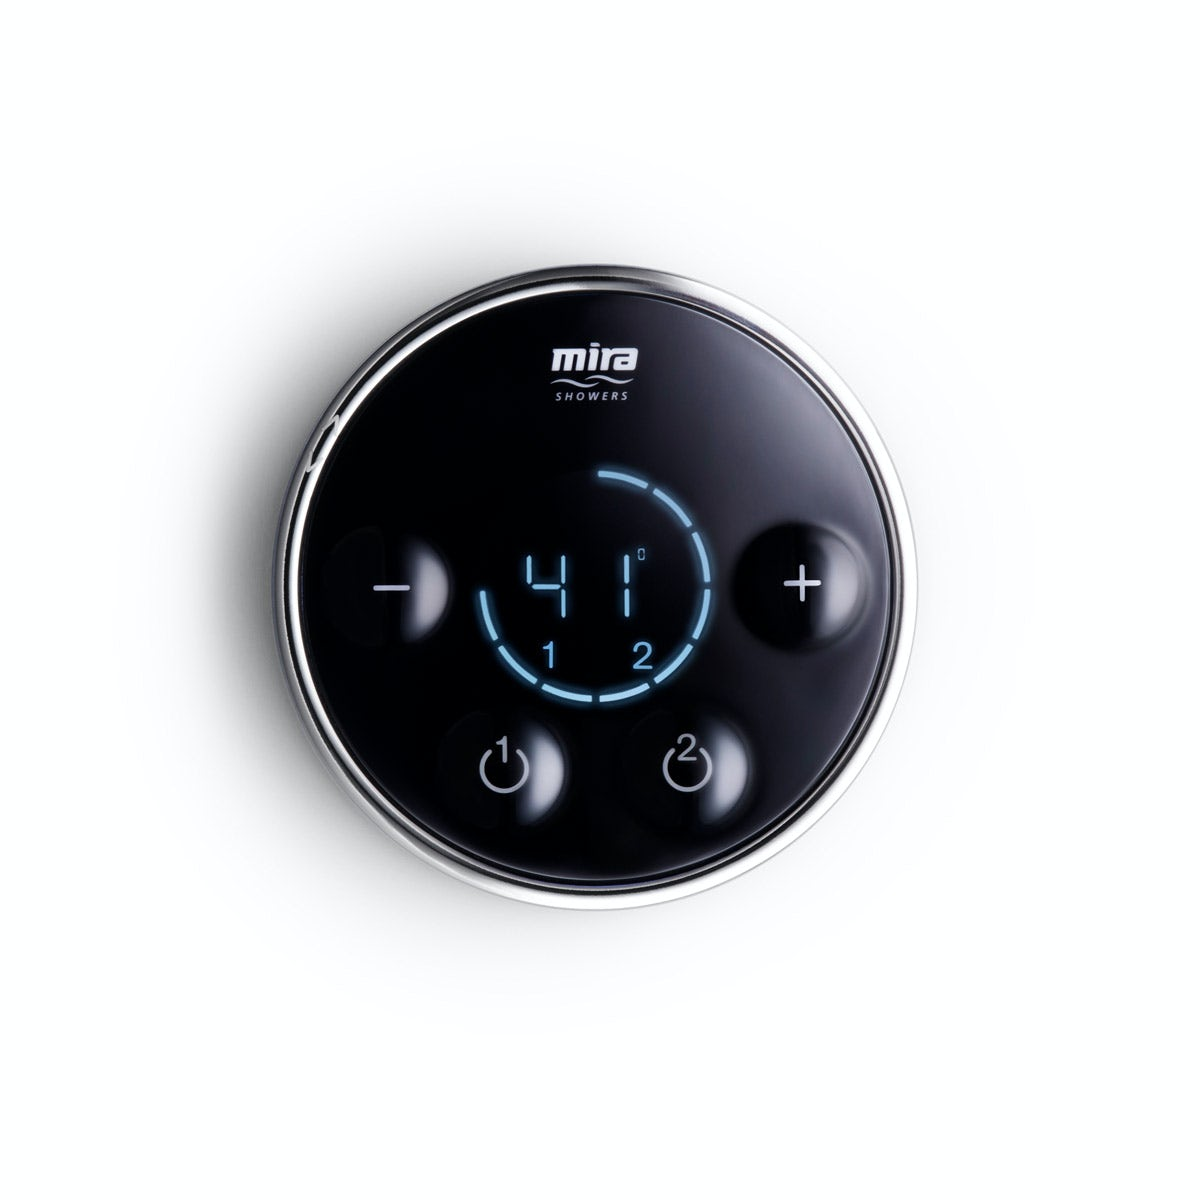 Mira Platinum dual wireless digital shower controller